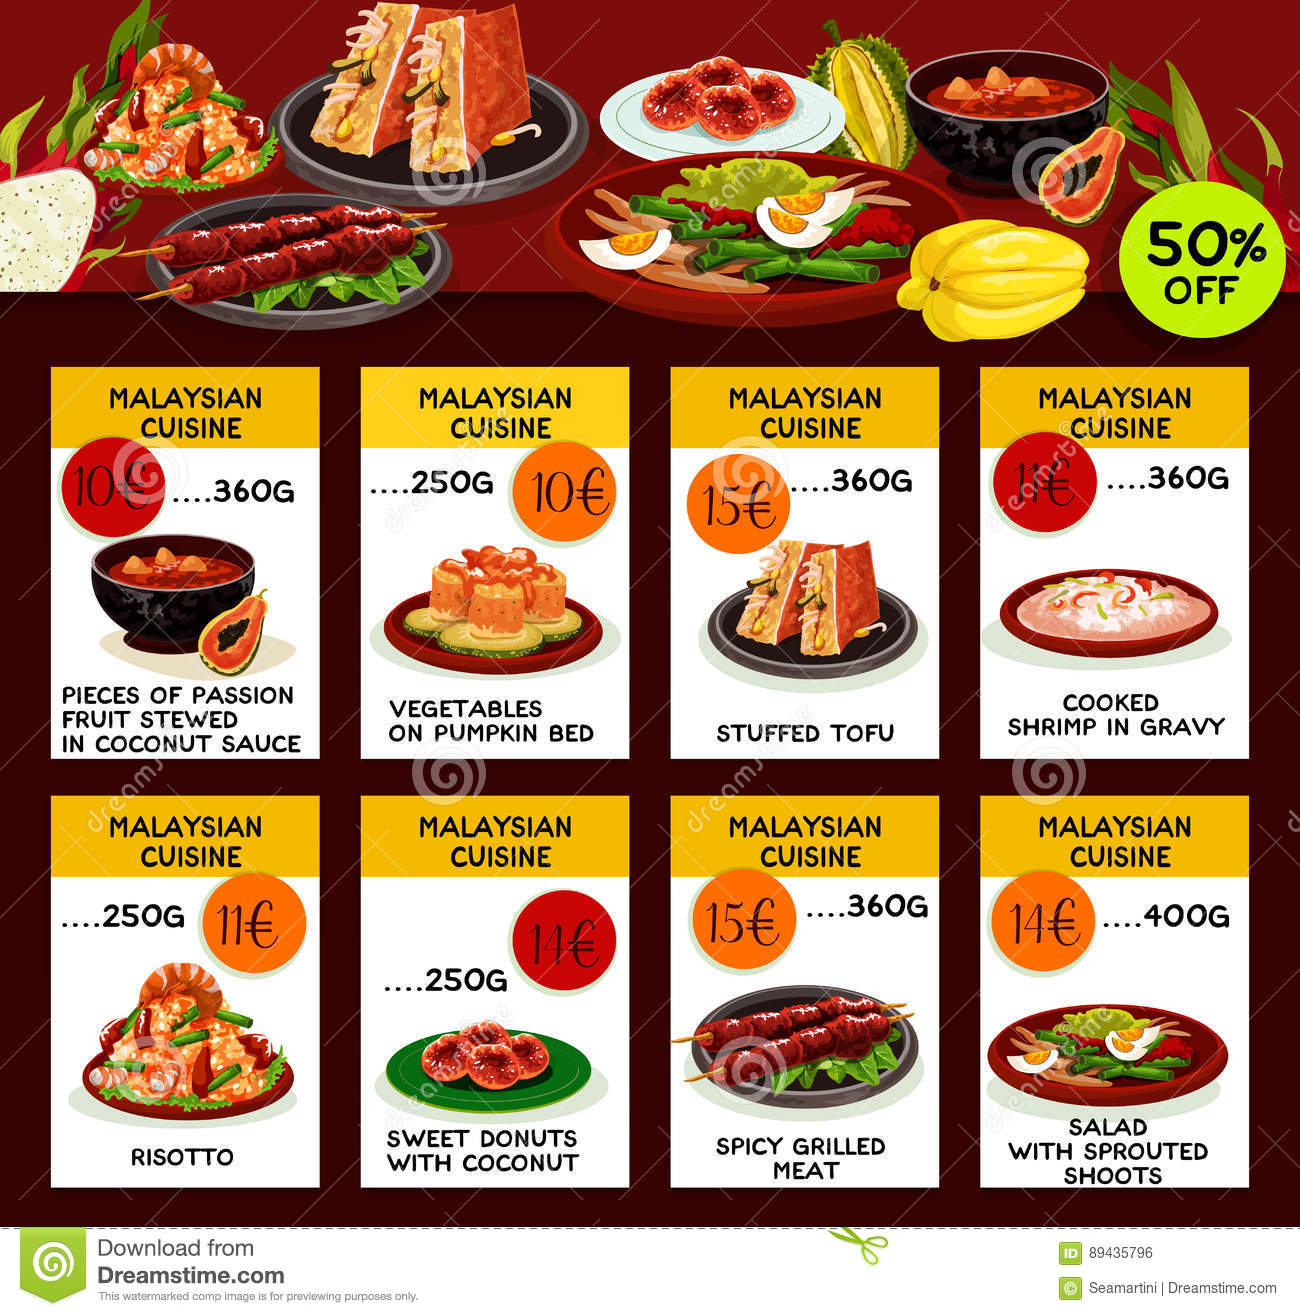 Malaysian cuisine restaurant menu template design stock for Asian cuisine menu